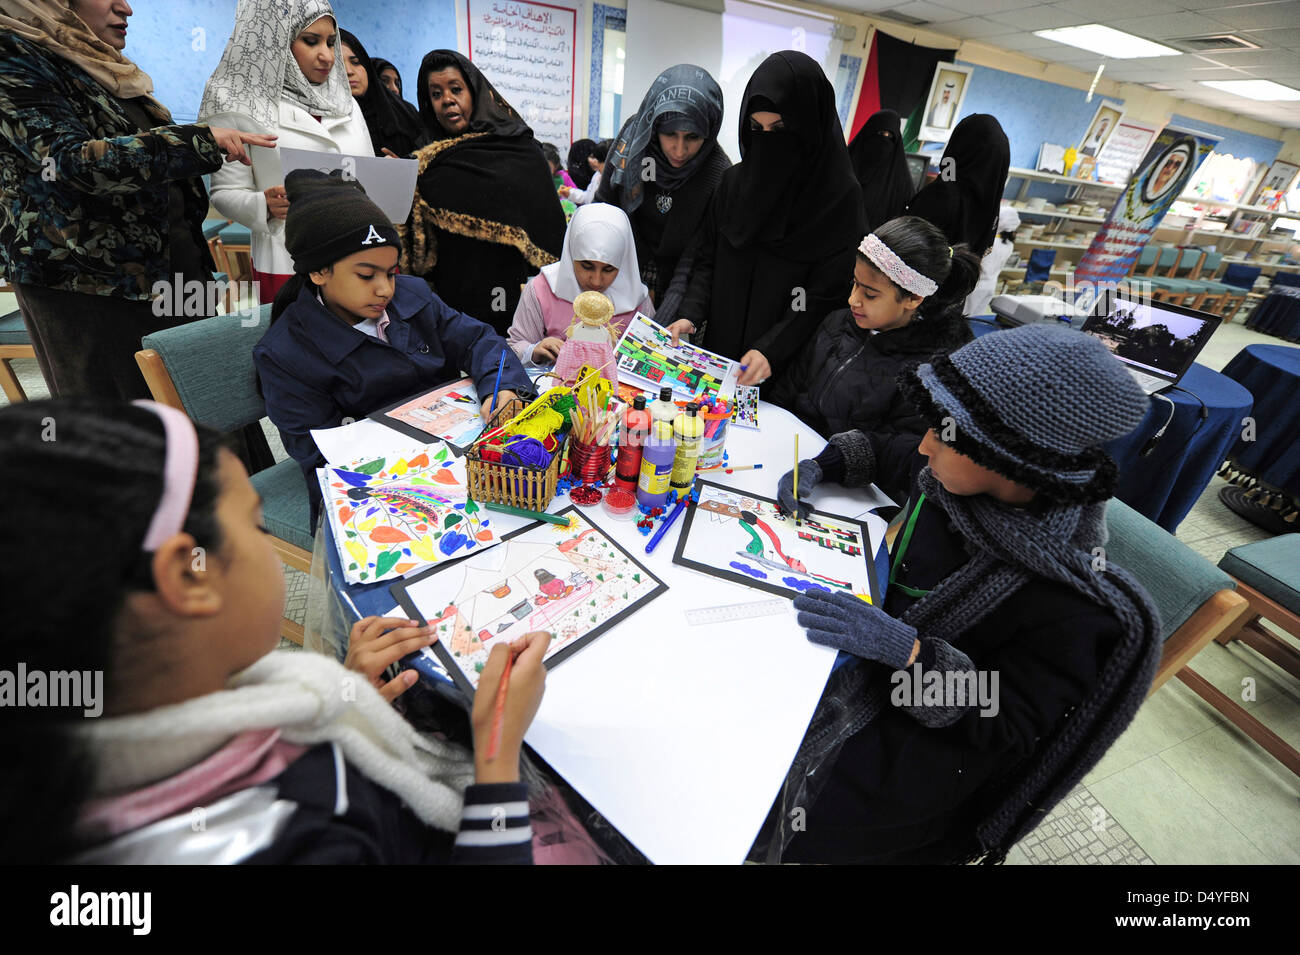 Kuwait, Kuwait City, drawing activities in classroom with supervising teachers with burqa. (MR) - Stock Image